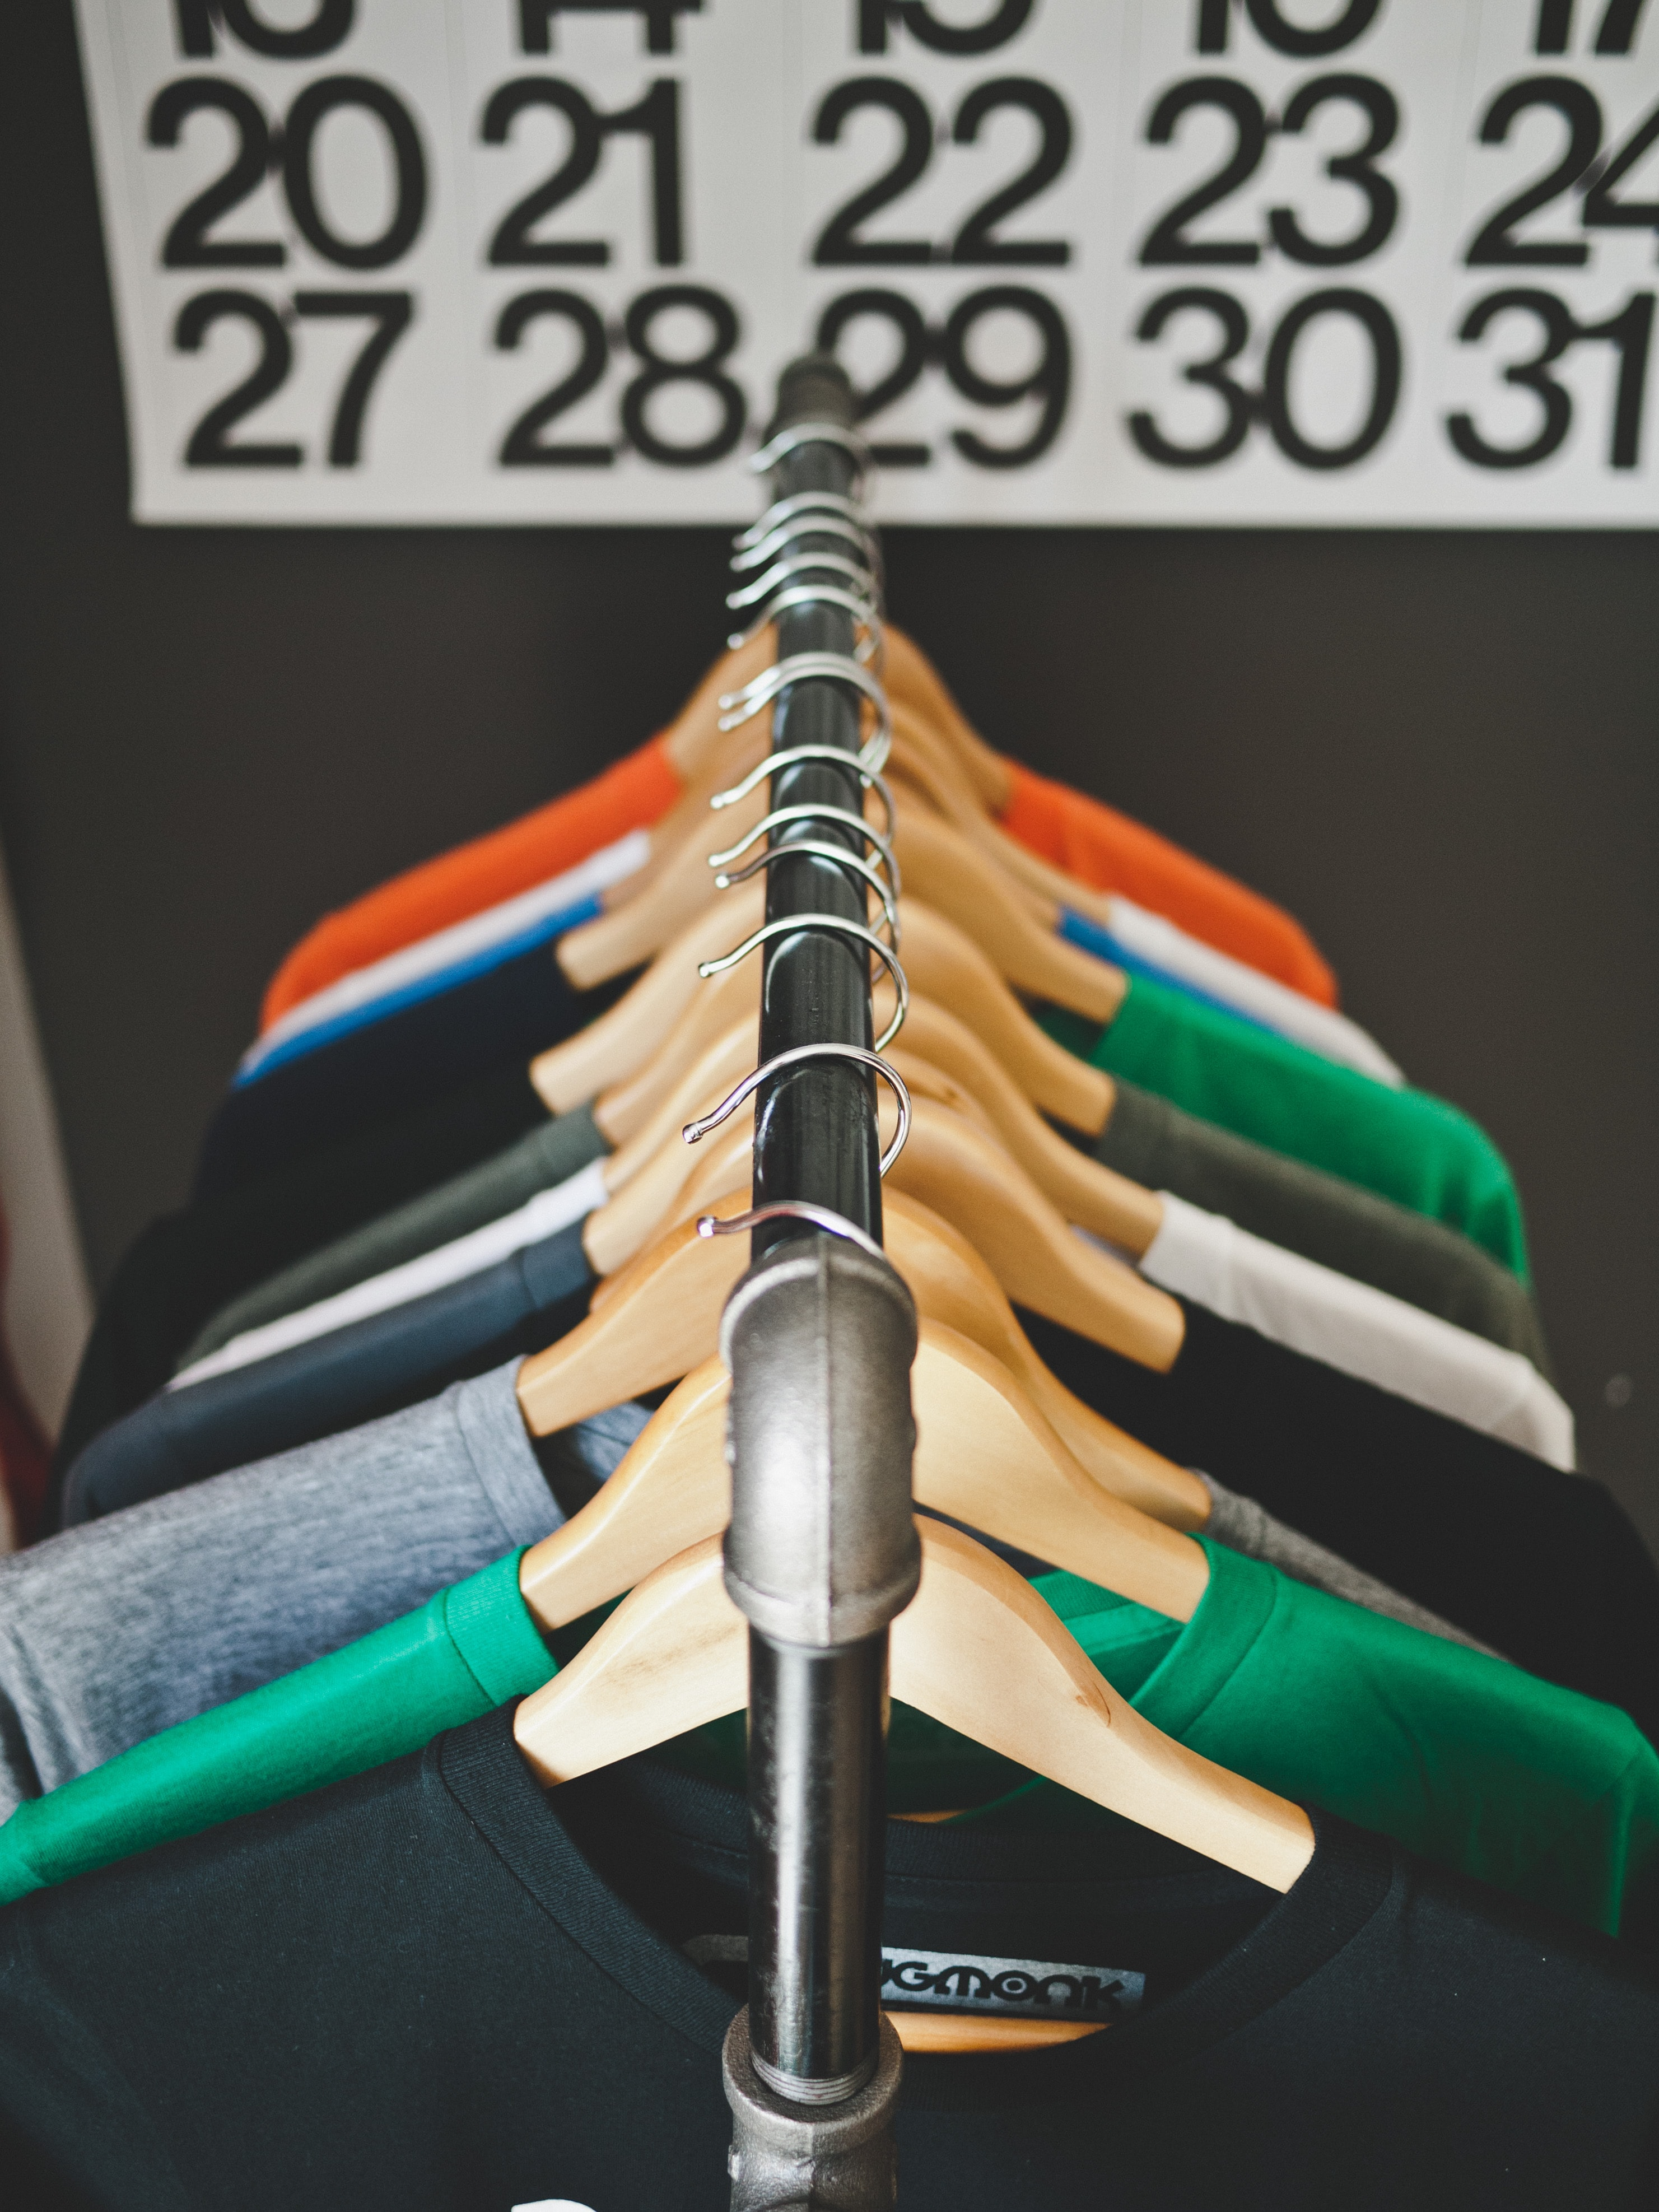 Colorful t-shirts on hangers in a clothing store